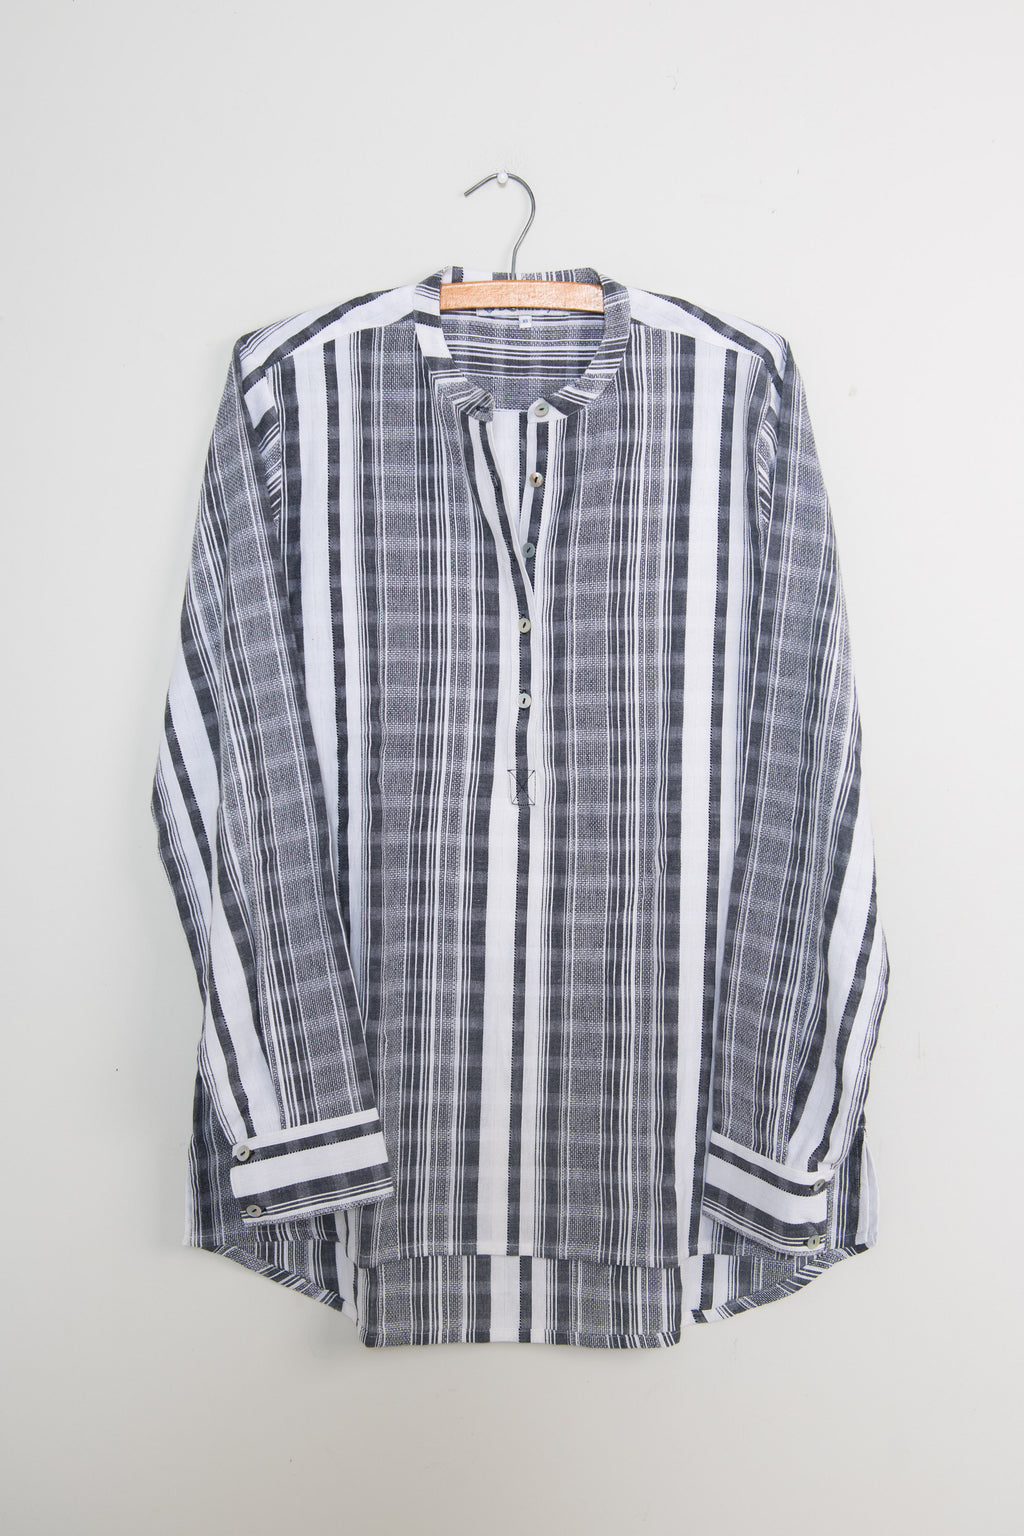 Long Back Shirt in Soft Black and White Stripe Cotton